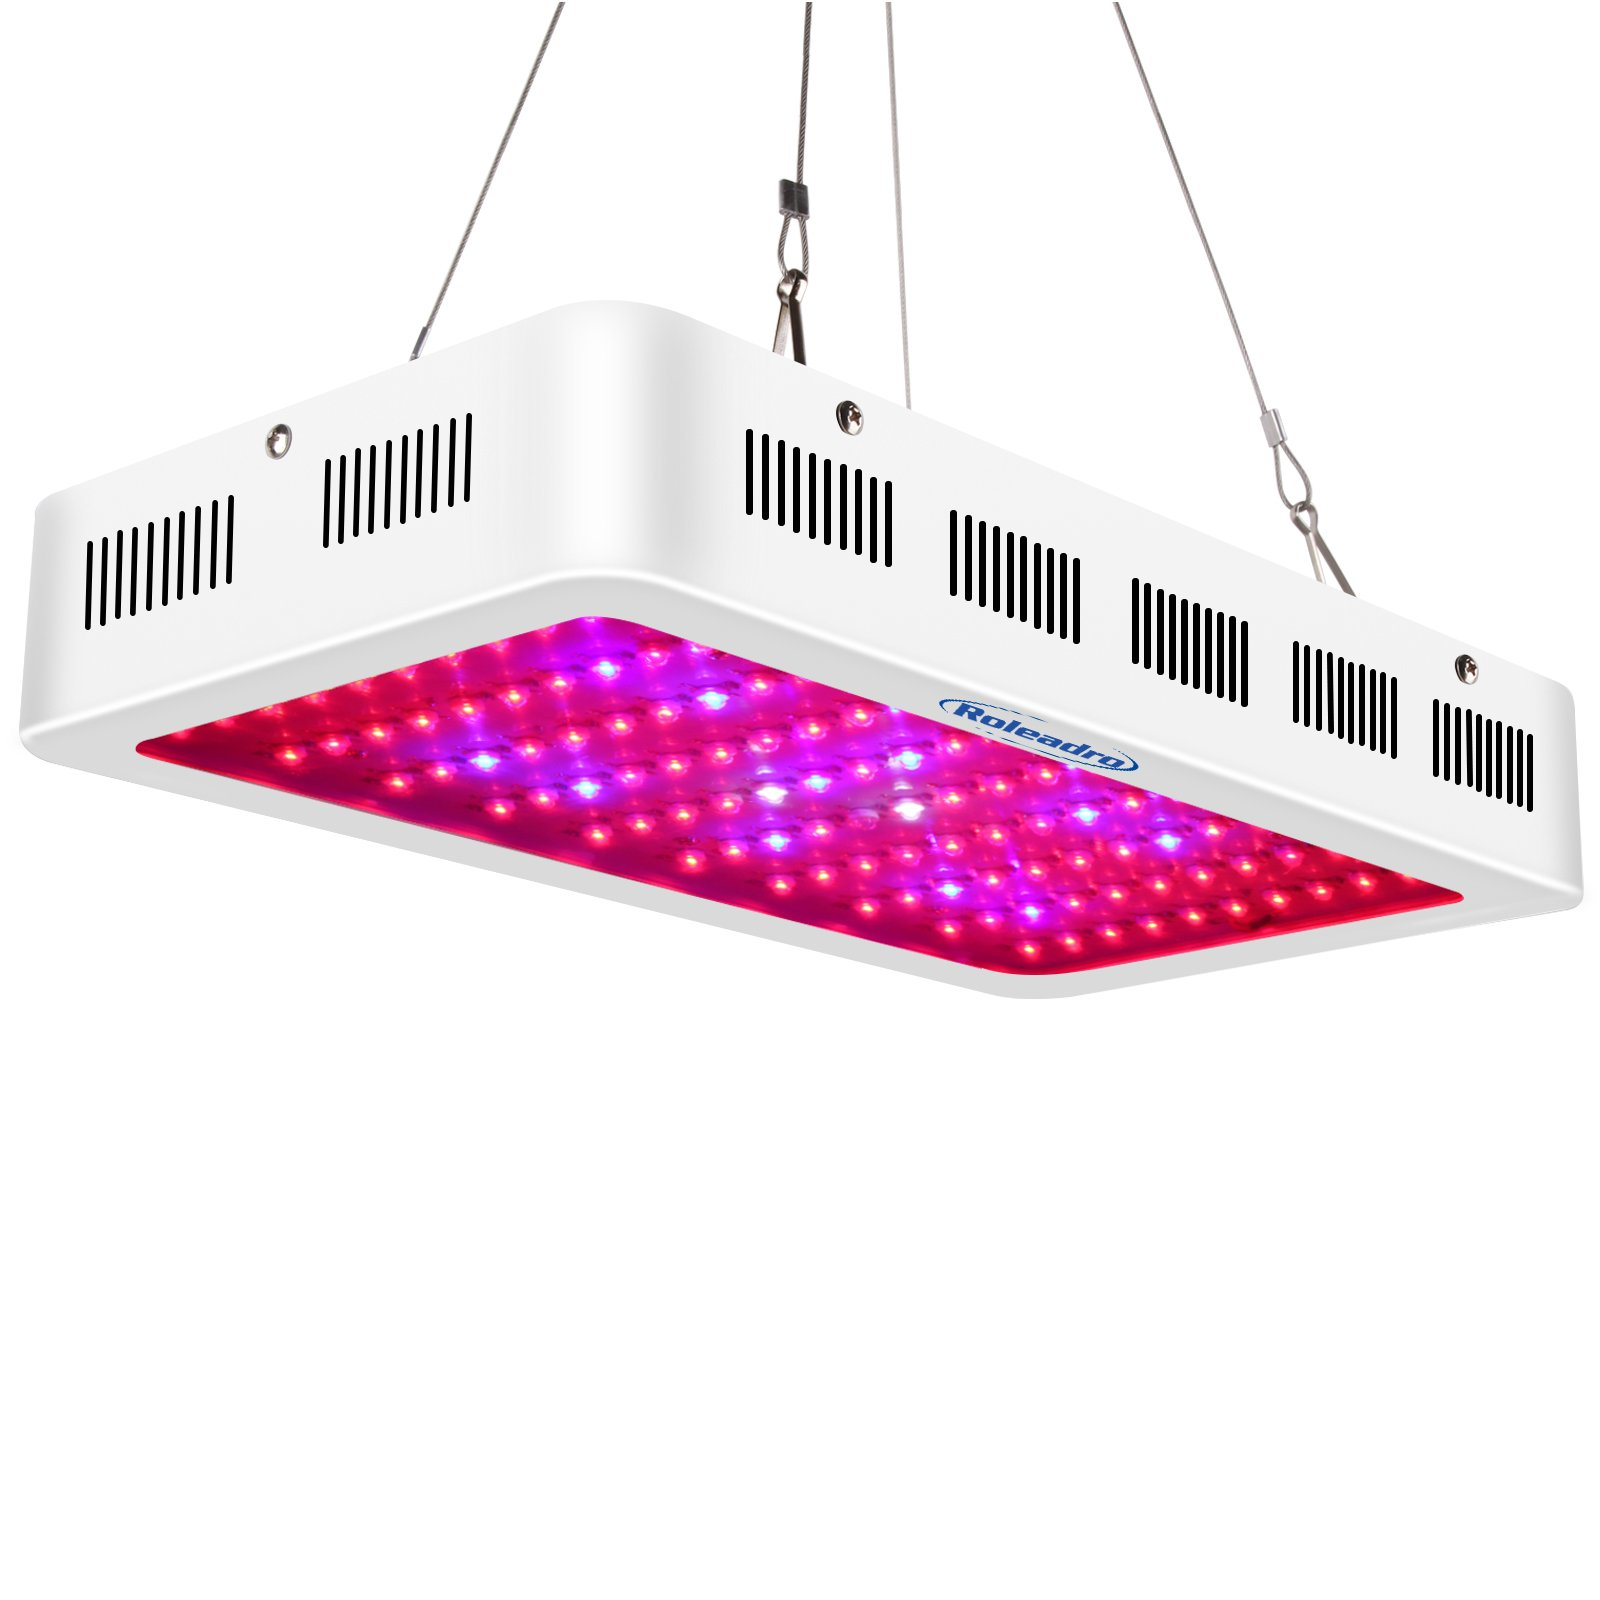 LED Pflanzenlampe 300w Roleadro Grow Led Lampe mit Daisy-Chain ...